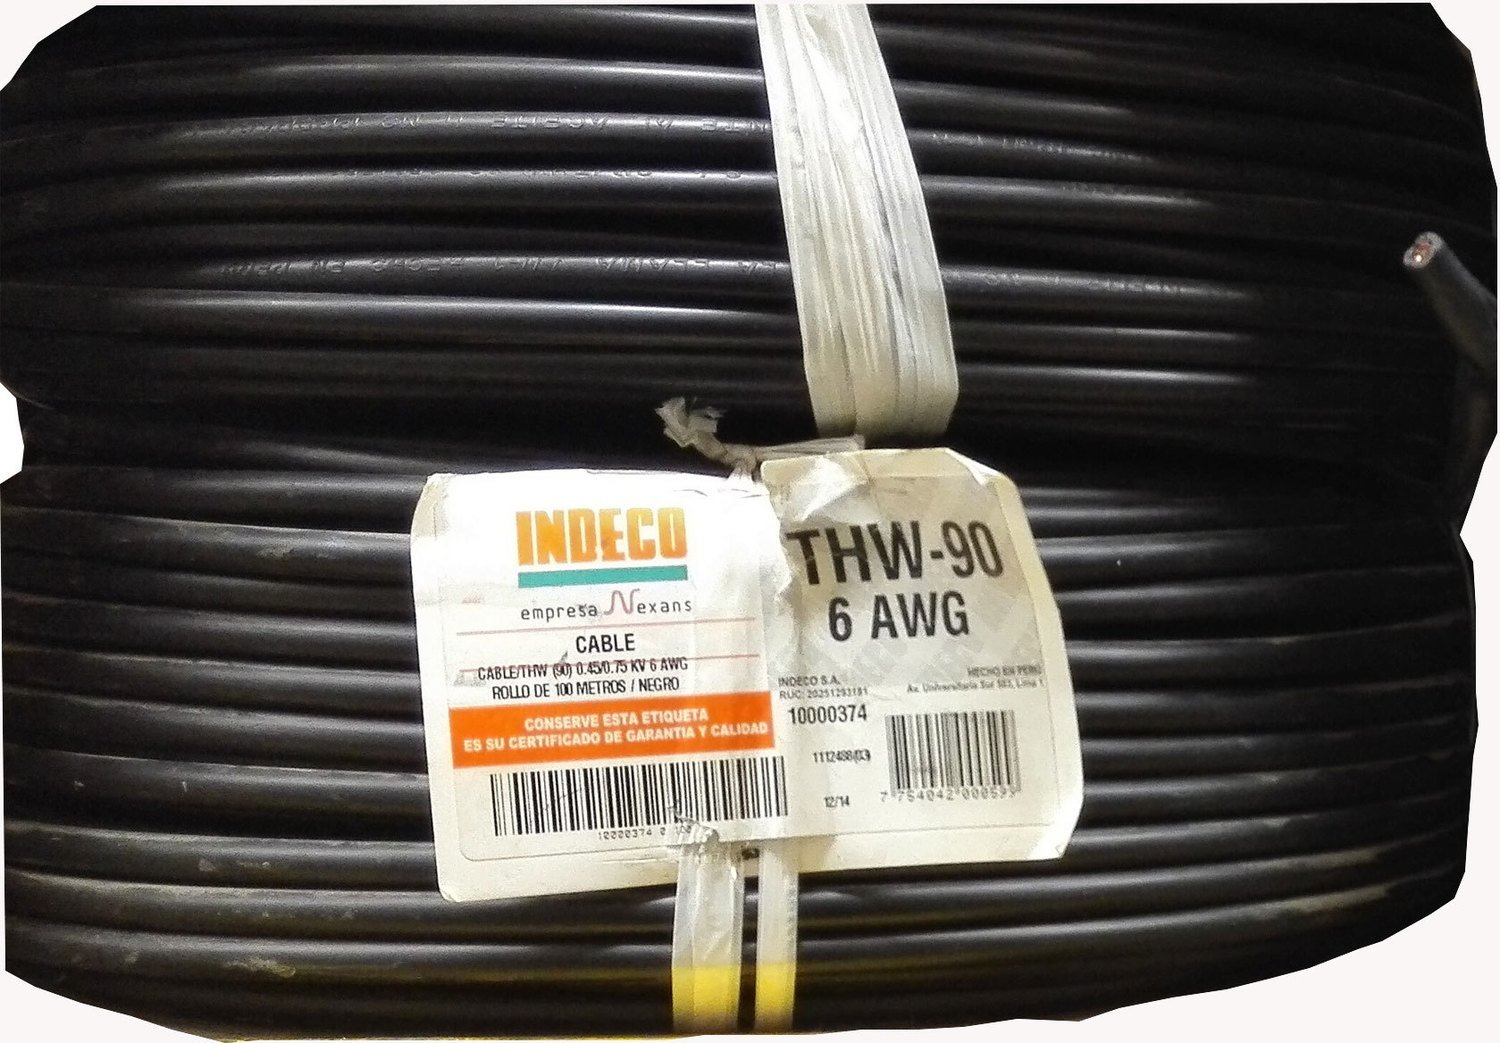 Cable THW90 6AWG